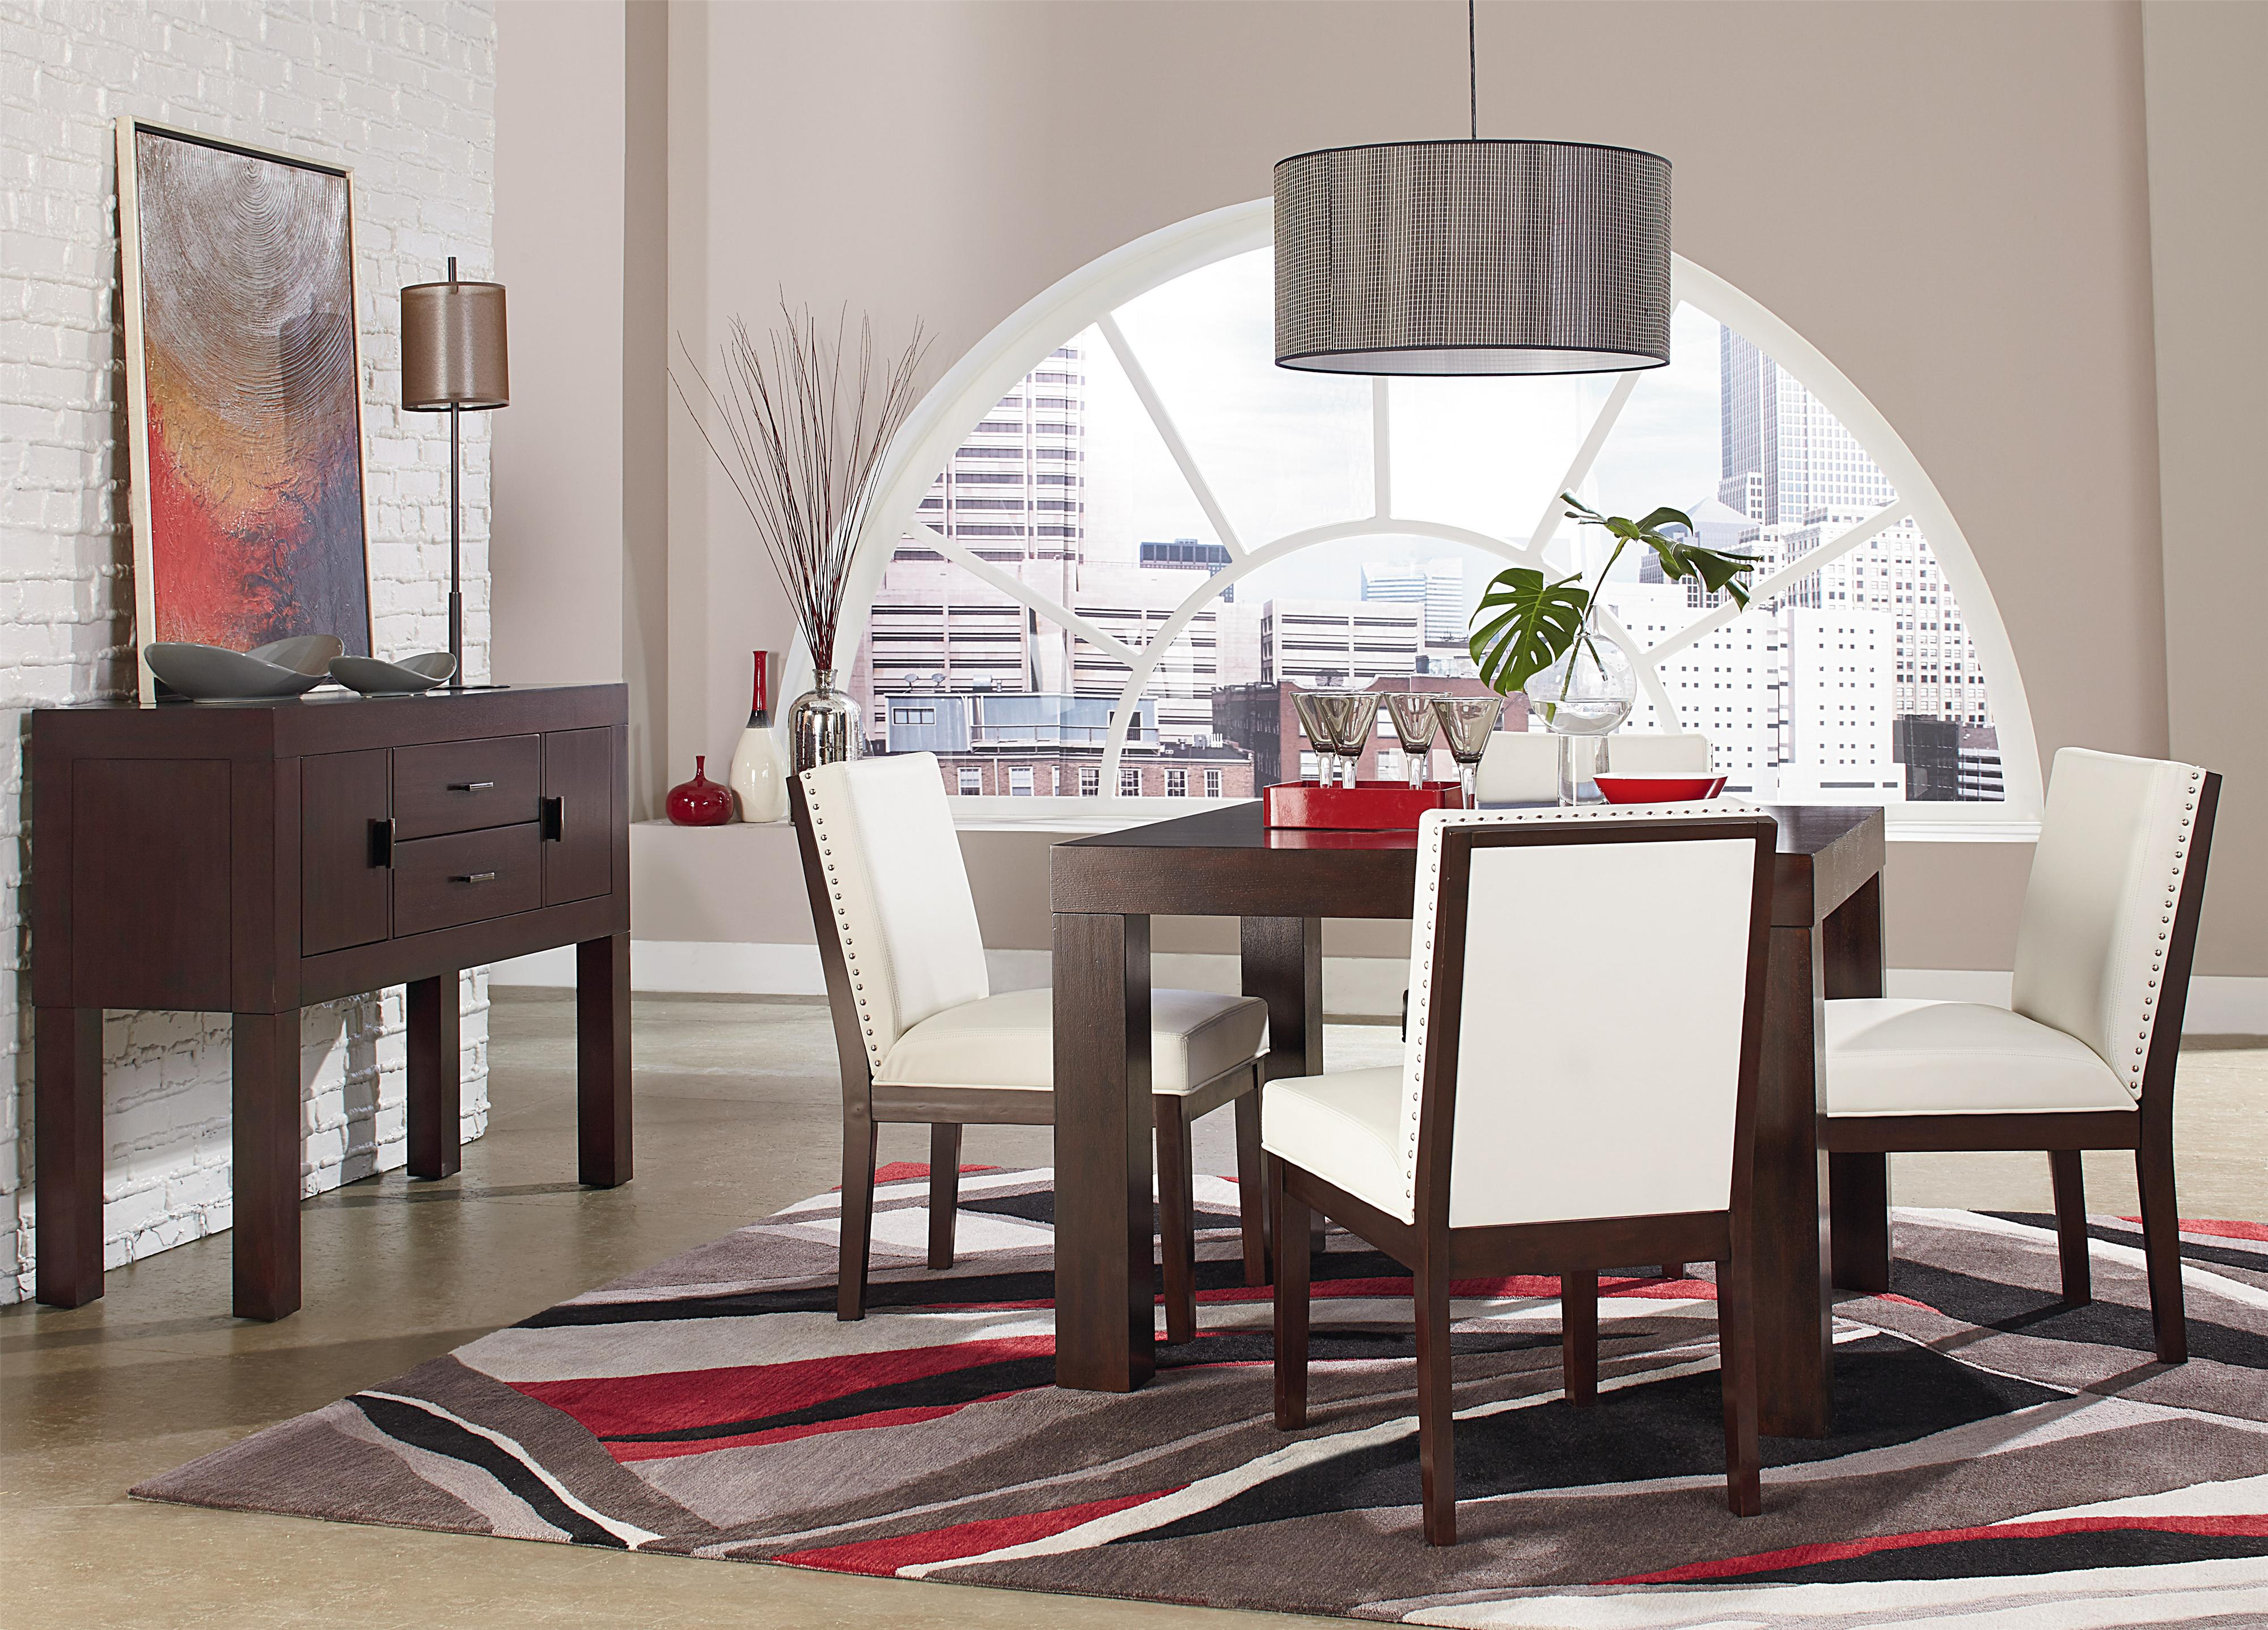 Standard Furniture Couture Elegance Dining Room Group - Item Number: 10560 Dining Room Group 5